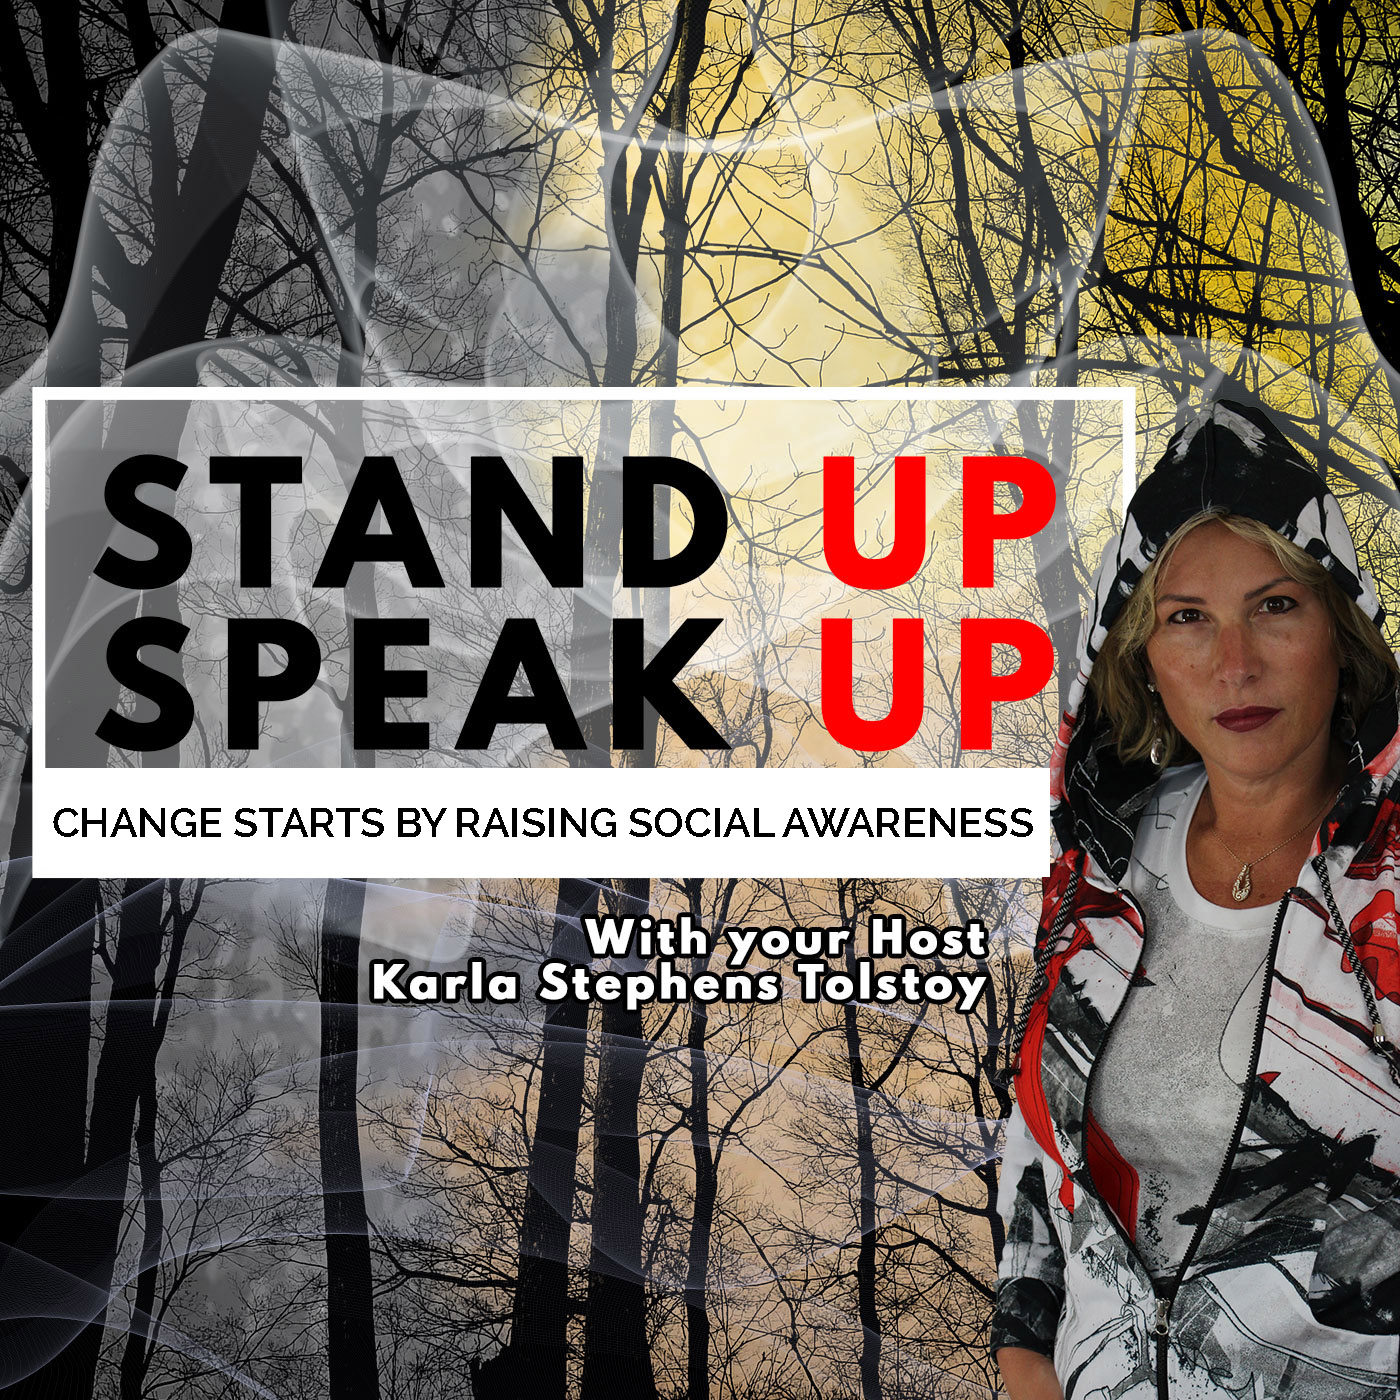 StandUp SpeakUp by Tokii